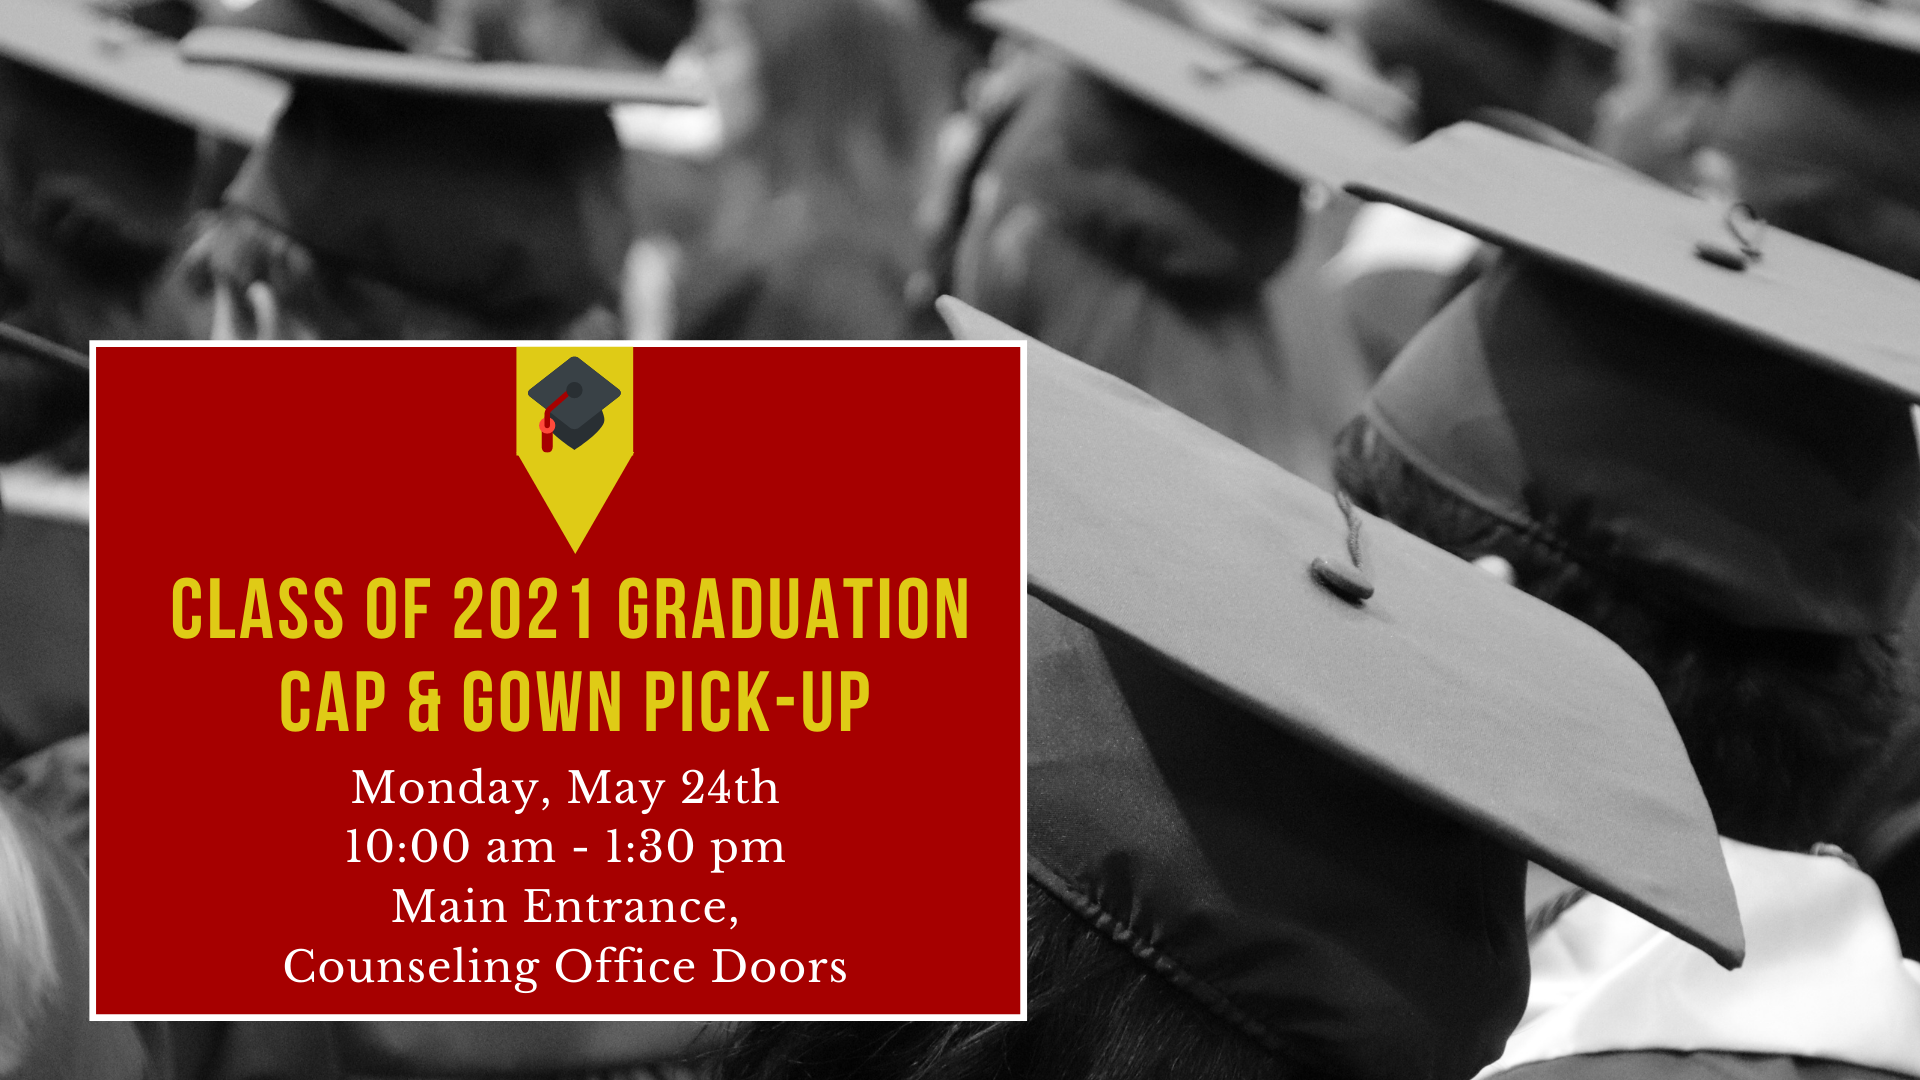 cap and gown pick-up